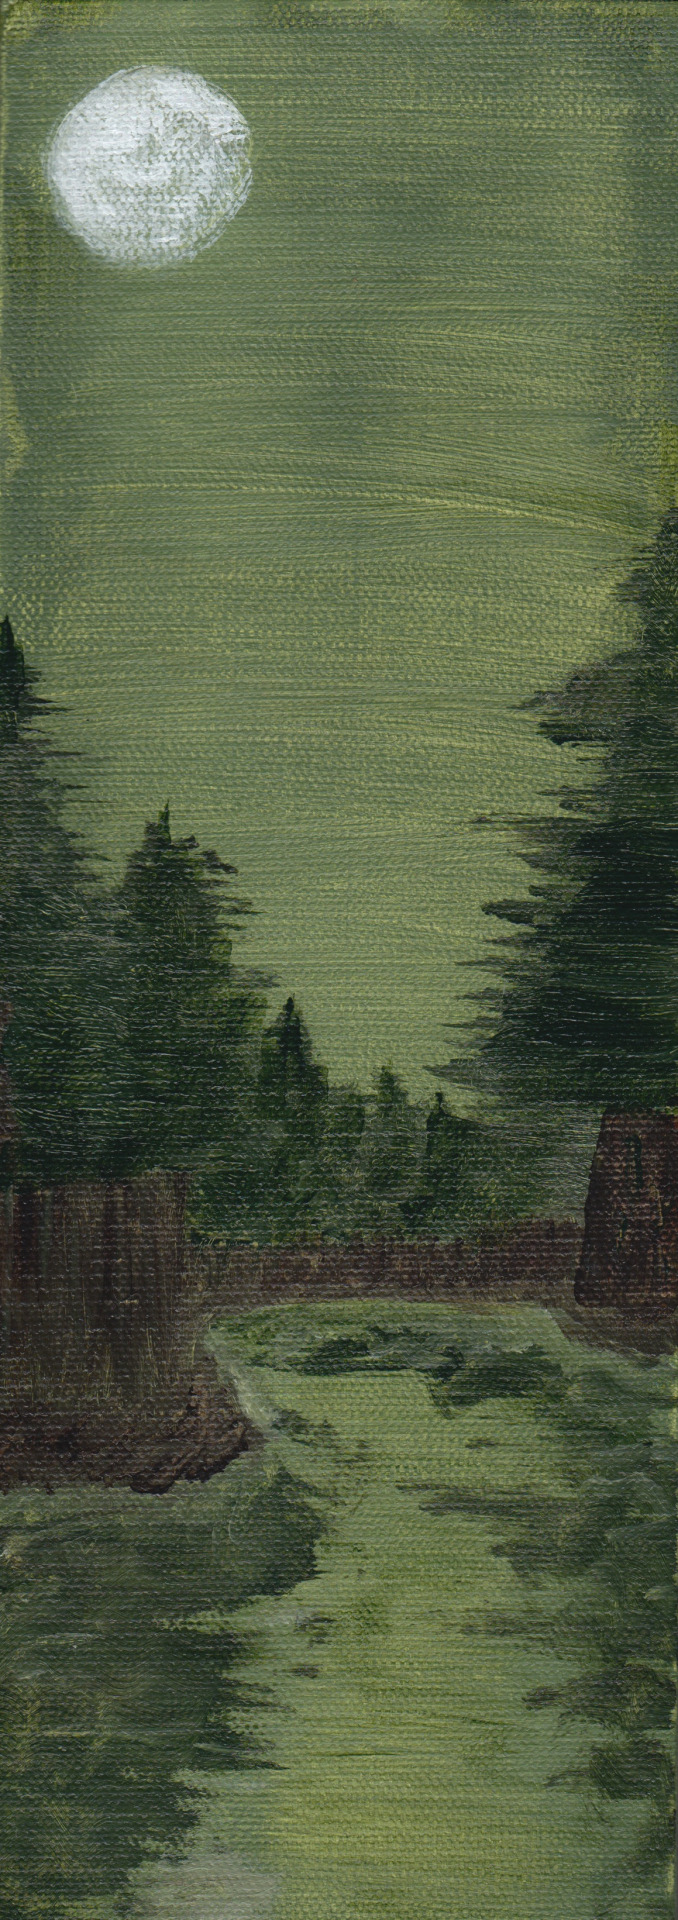 "Green Night - 4""x12"" - acrylic  I only used 3 colors of paint: van dyke brown, sap green hue, and titanium white."